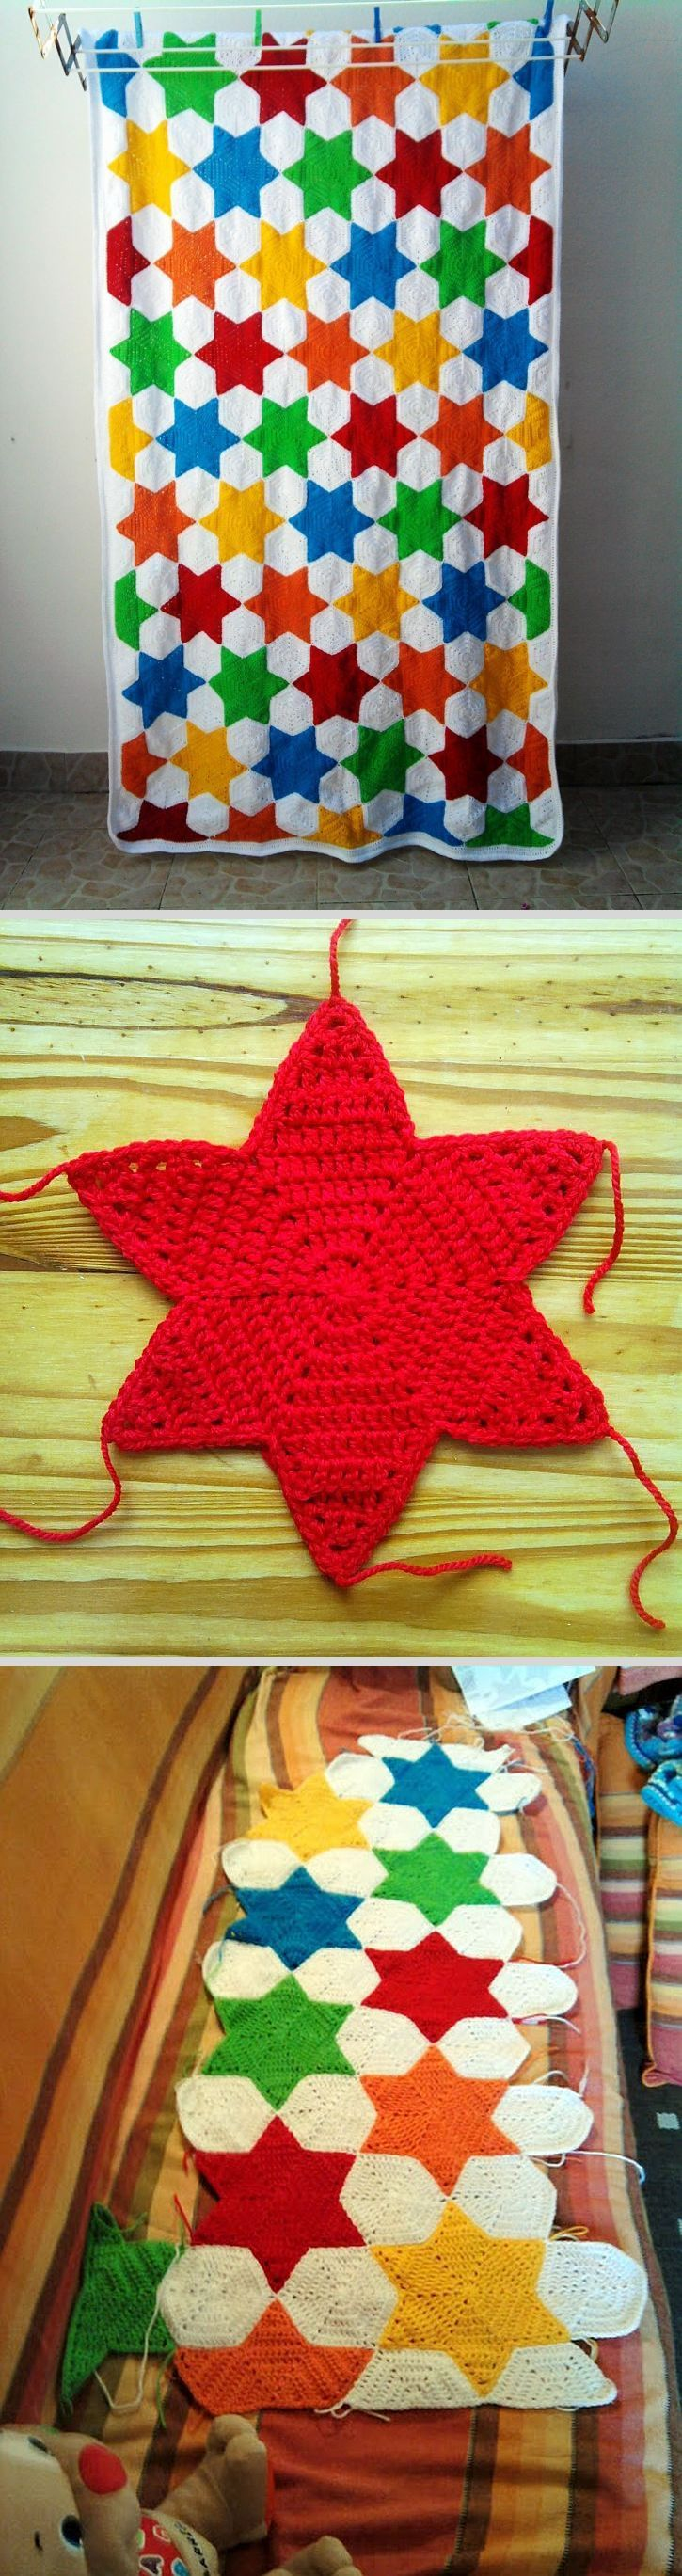 Star Blanket ~ Hexagon-based stars worked as one piece make the construction of this blanket interesting. Step-by-step photo tutorial for star. Site is in Portuguese, Google translate is helpful (& somewhat amusing :-) #crochet #afghan #throw